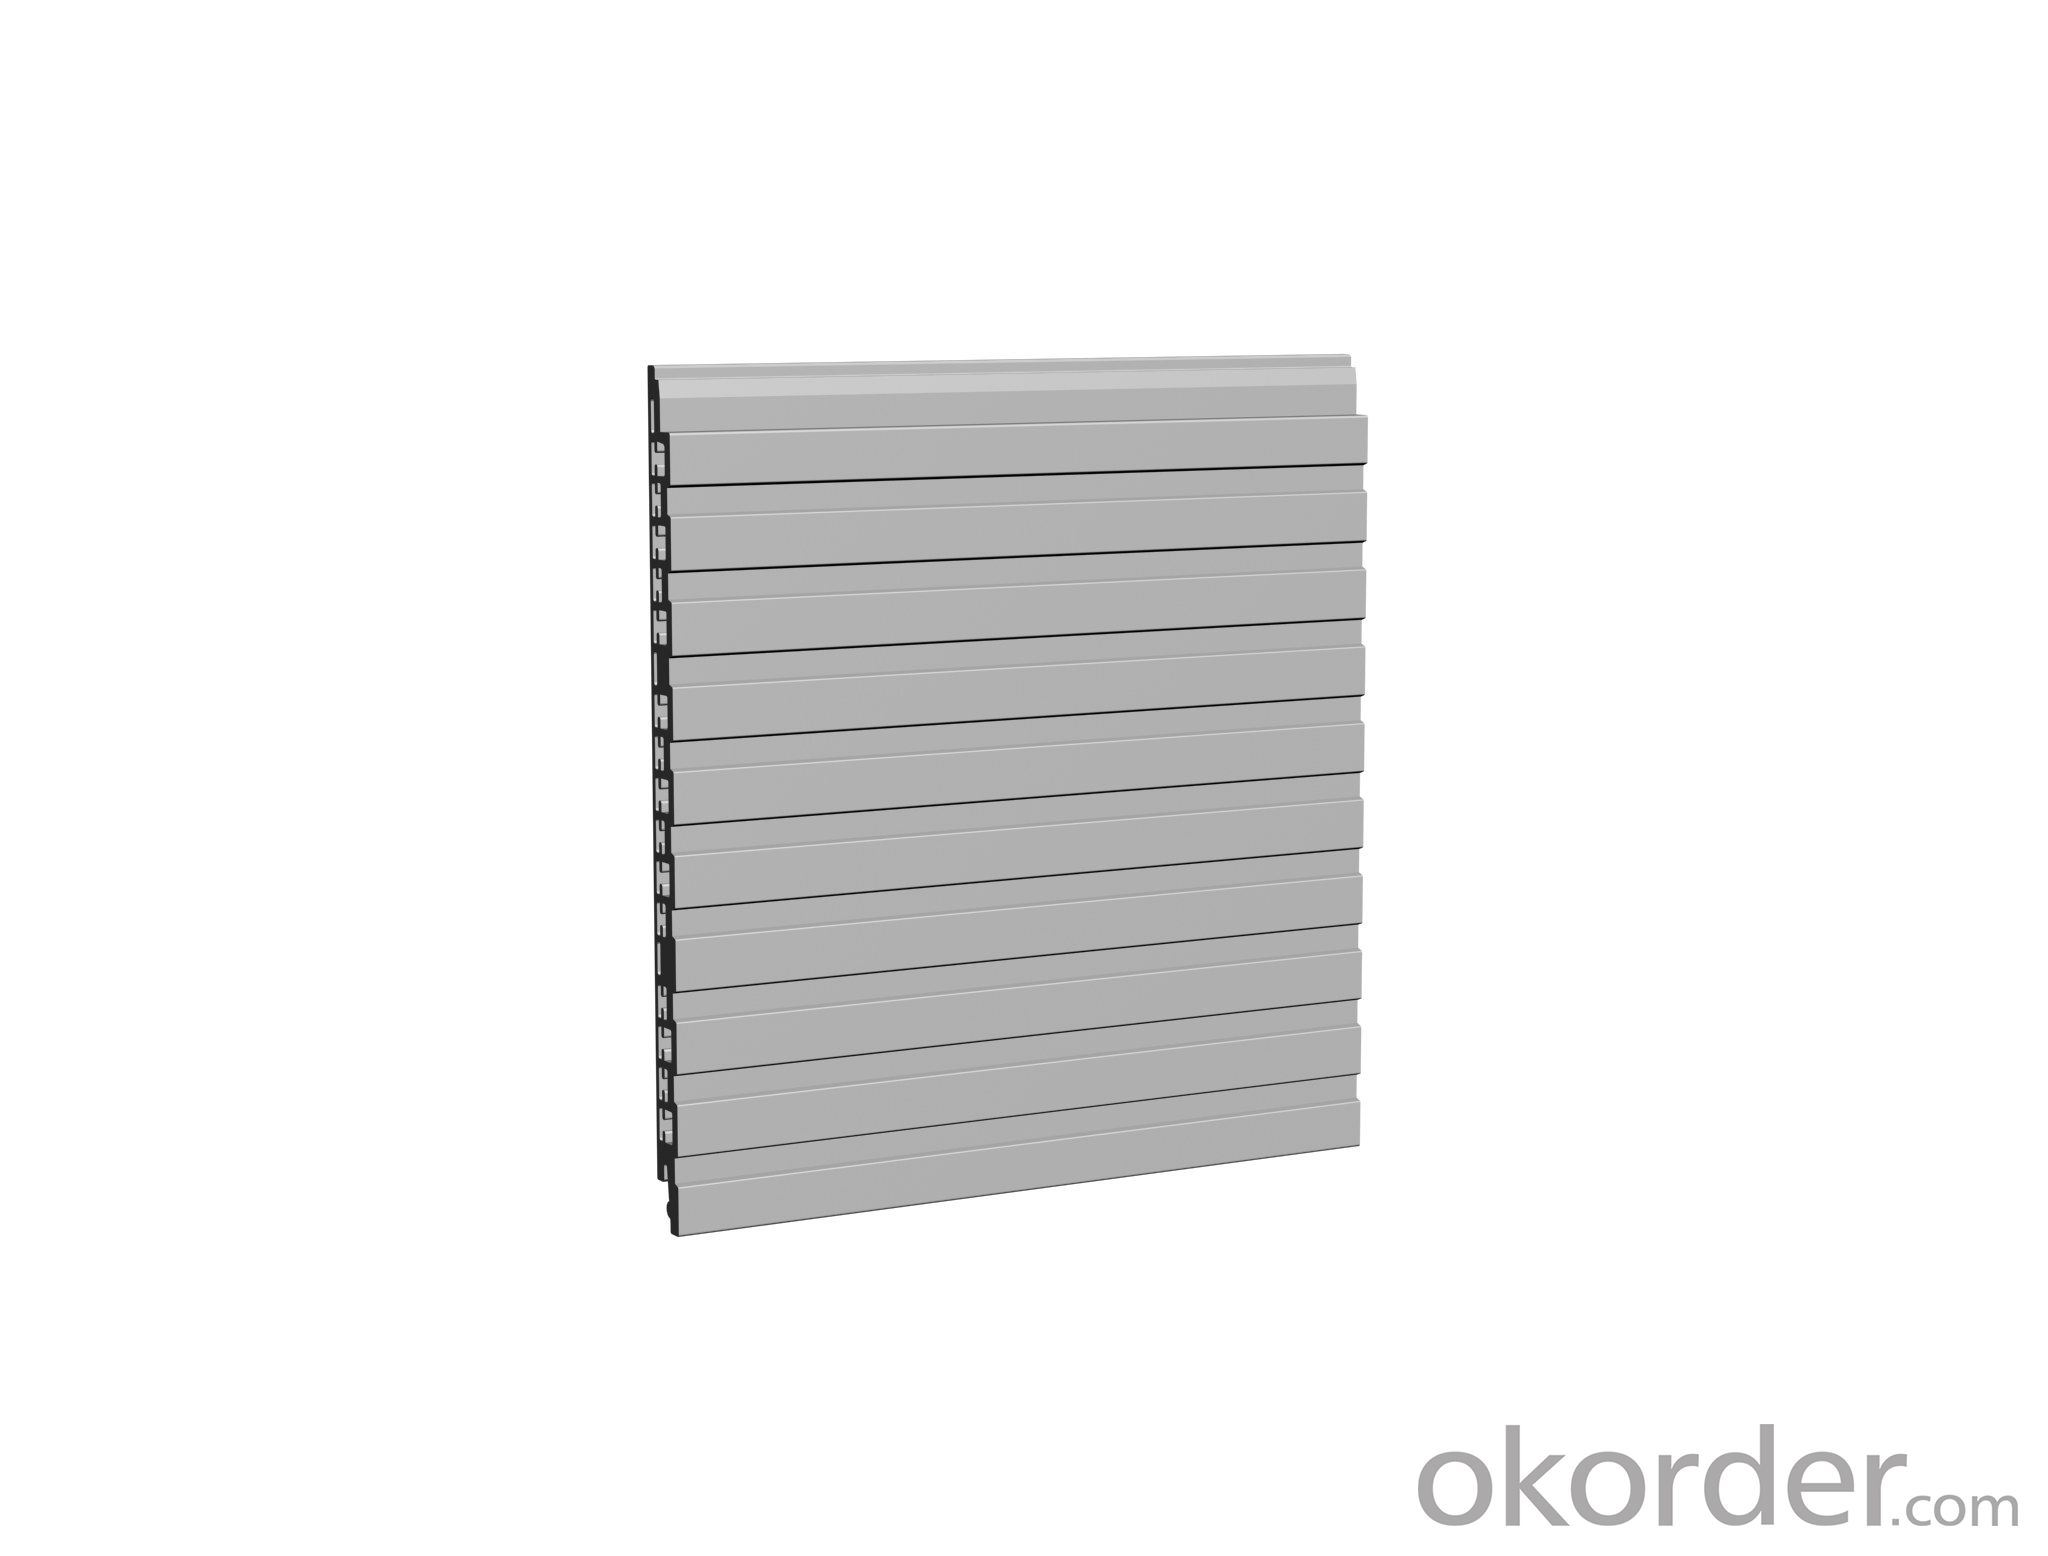 Buy Fireproof Exterior Wall Cladding Fiber Cement Siding Board Price Size Weight Model Width